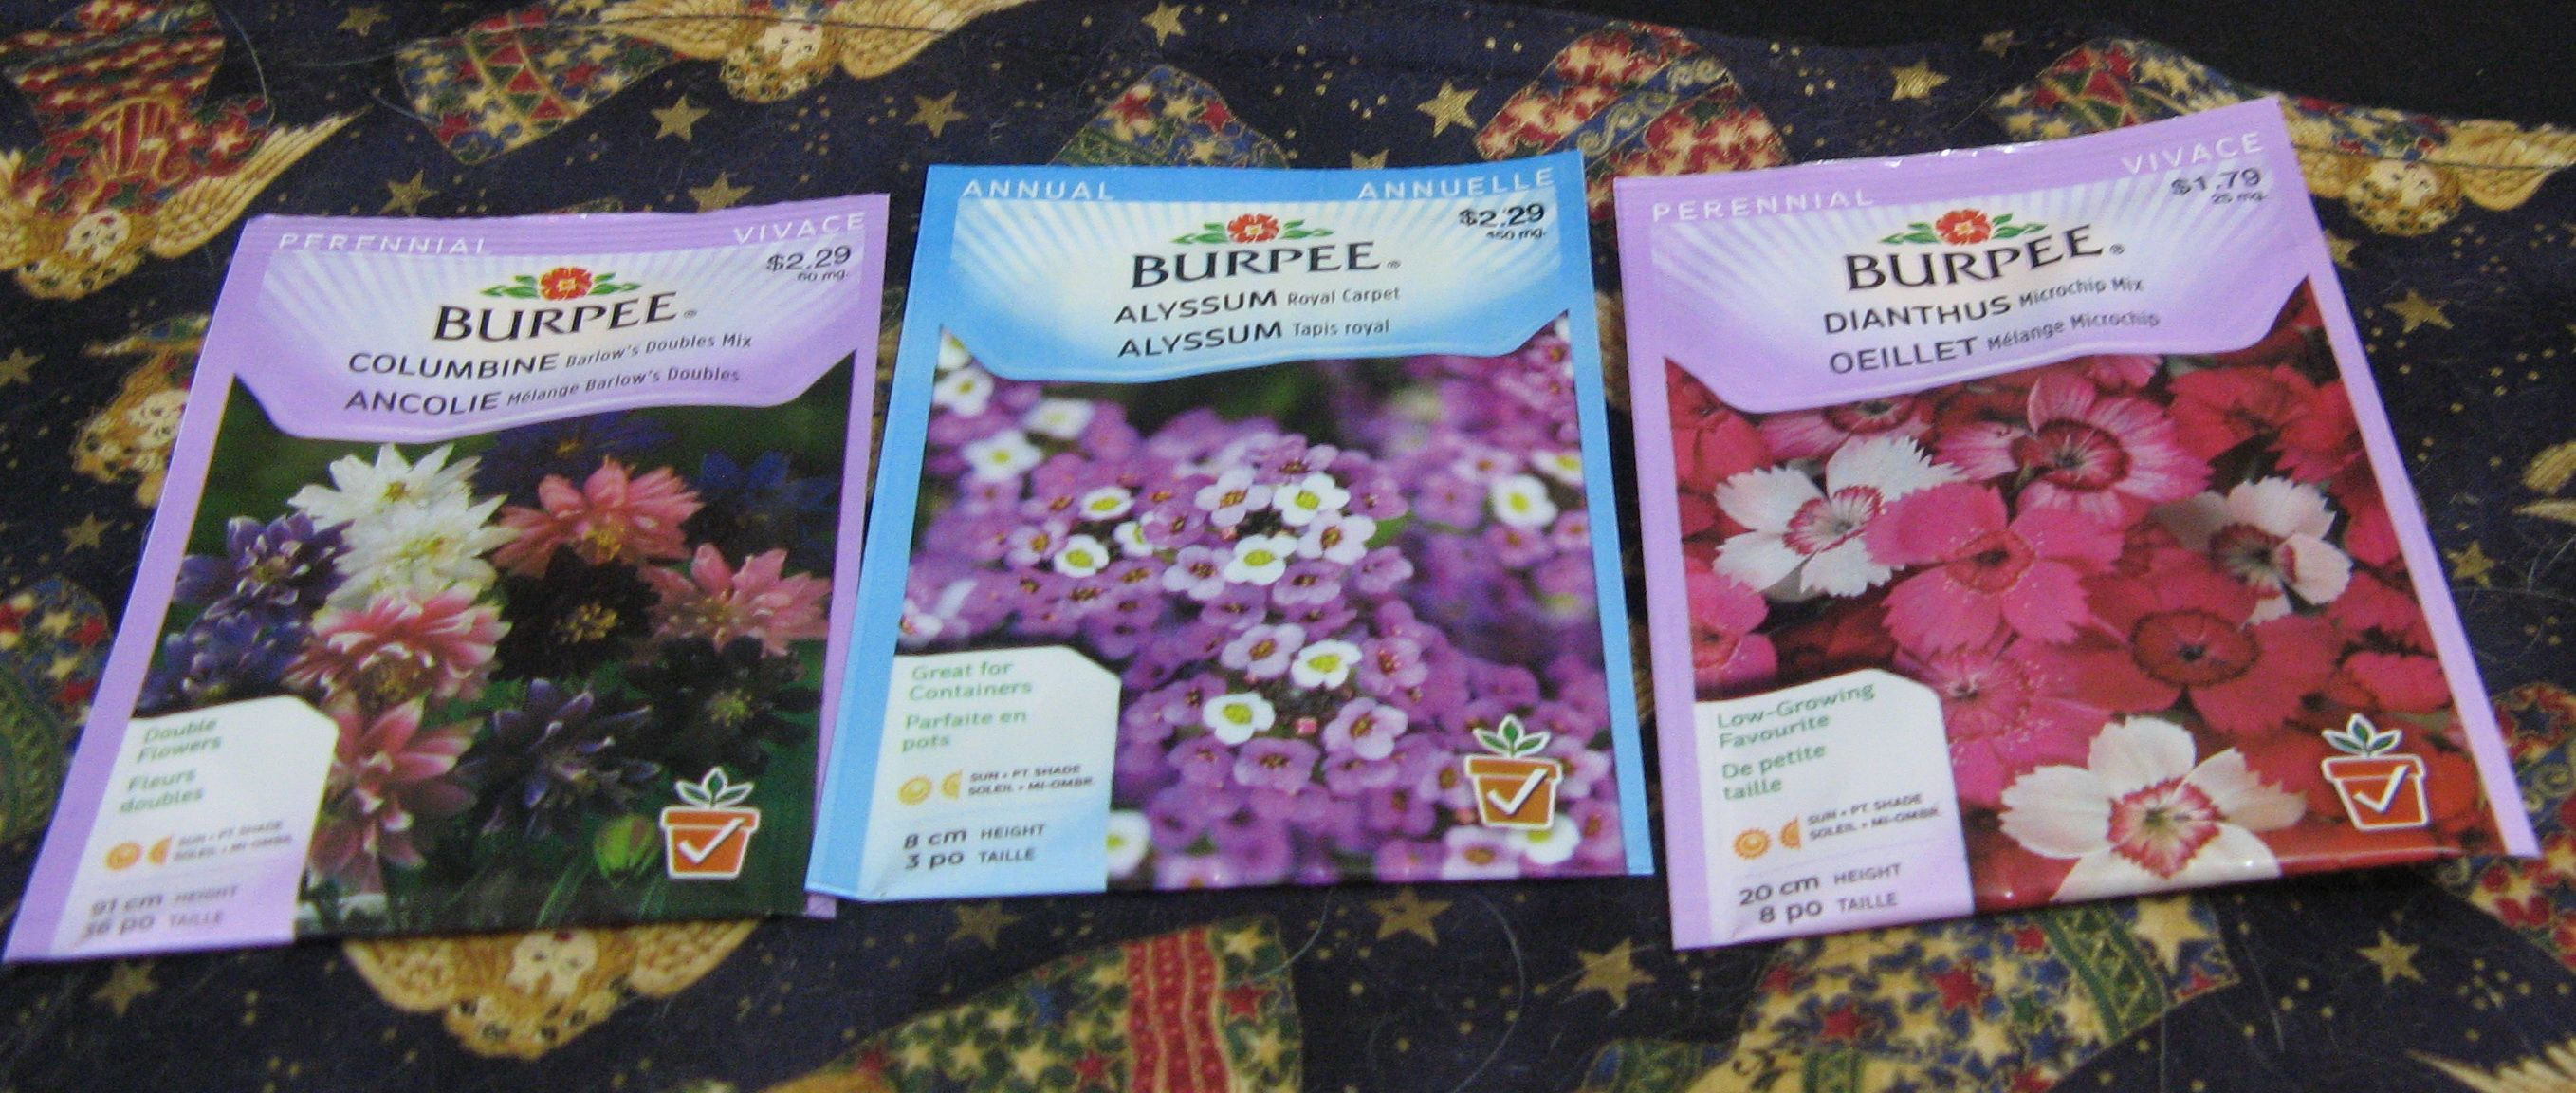 Dianthus, Columbine Barlow's Double Mix, and Royal Carpet Alyssum Seeds!